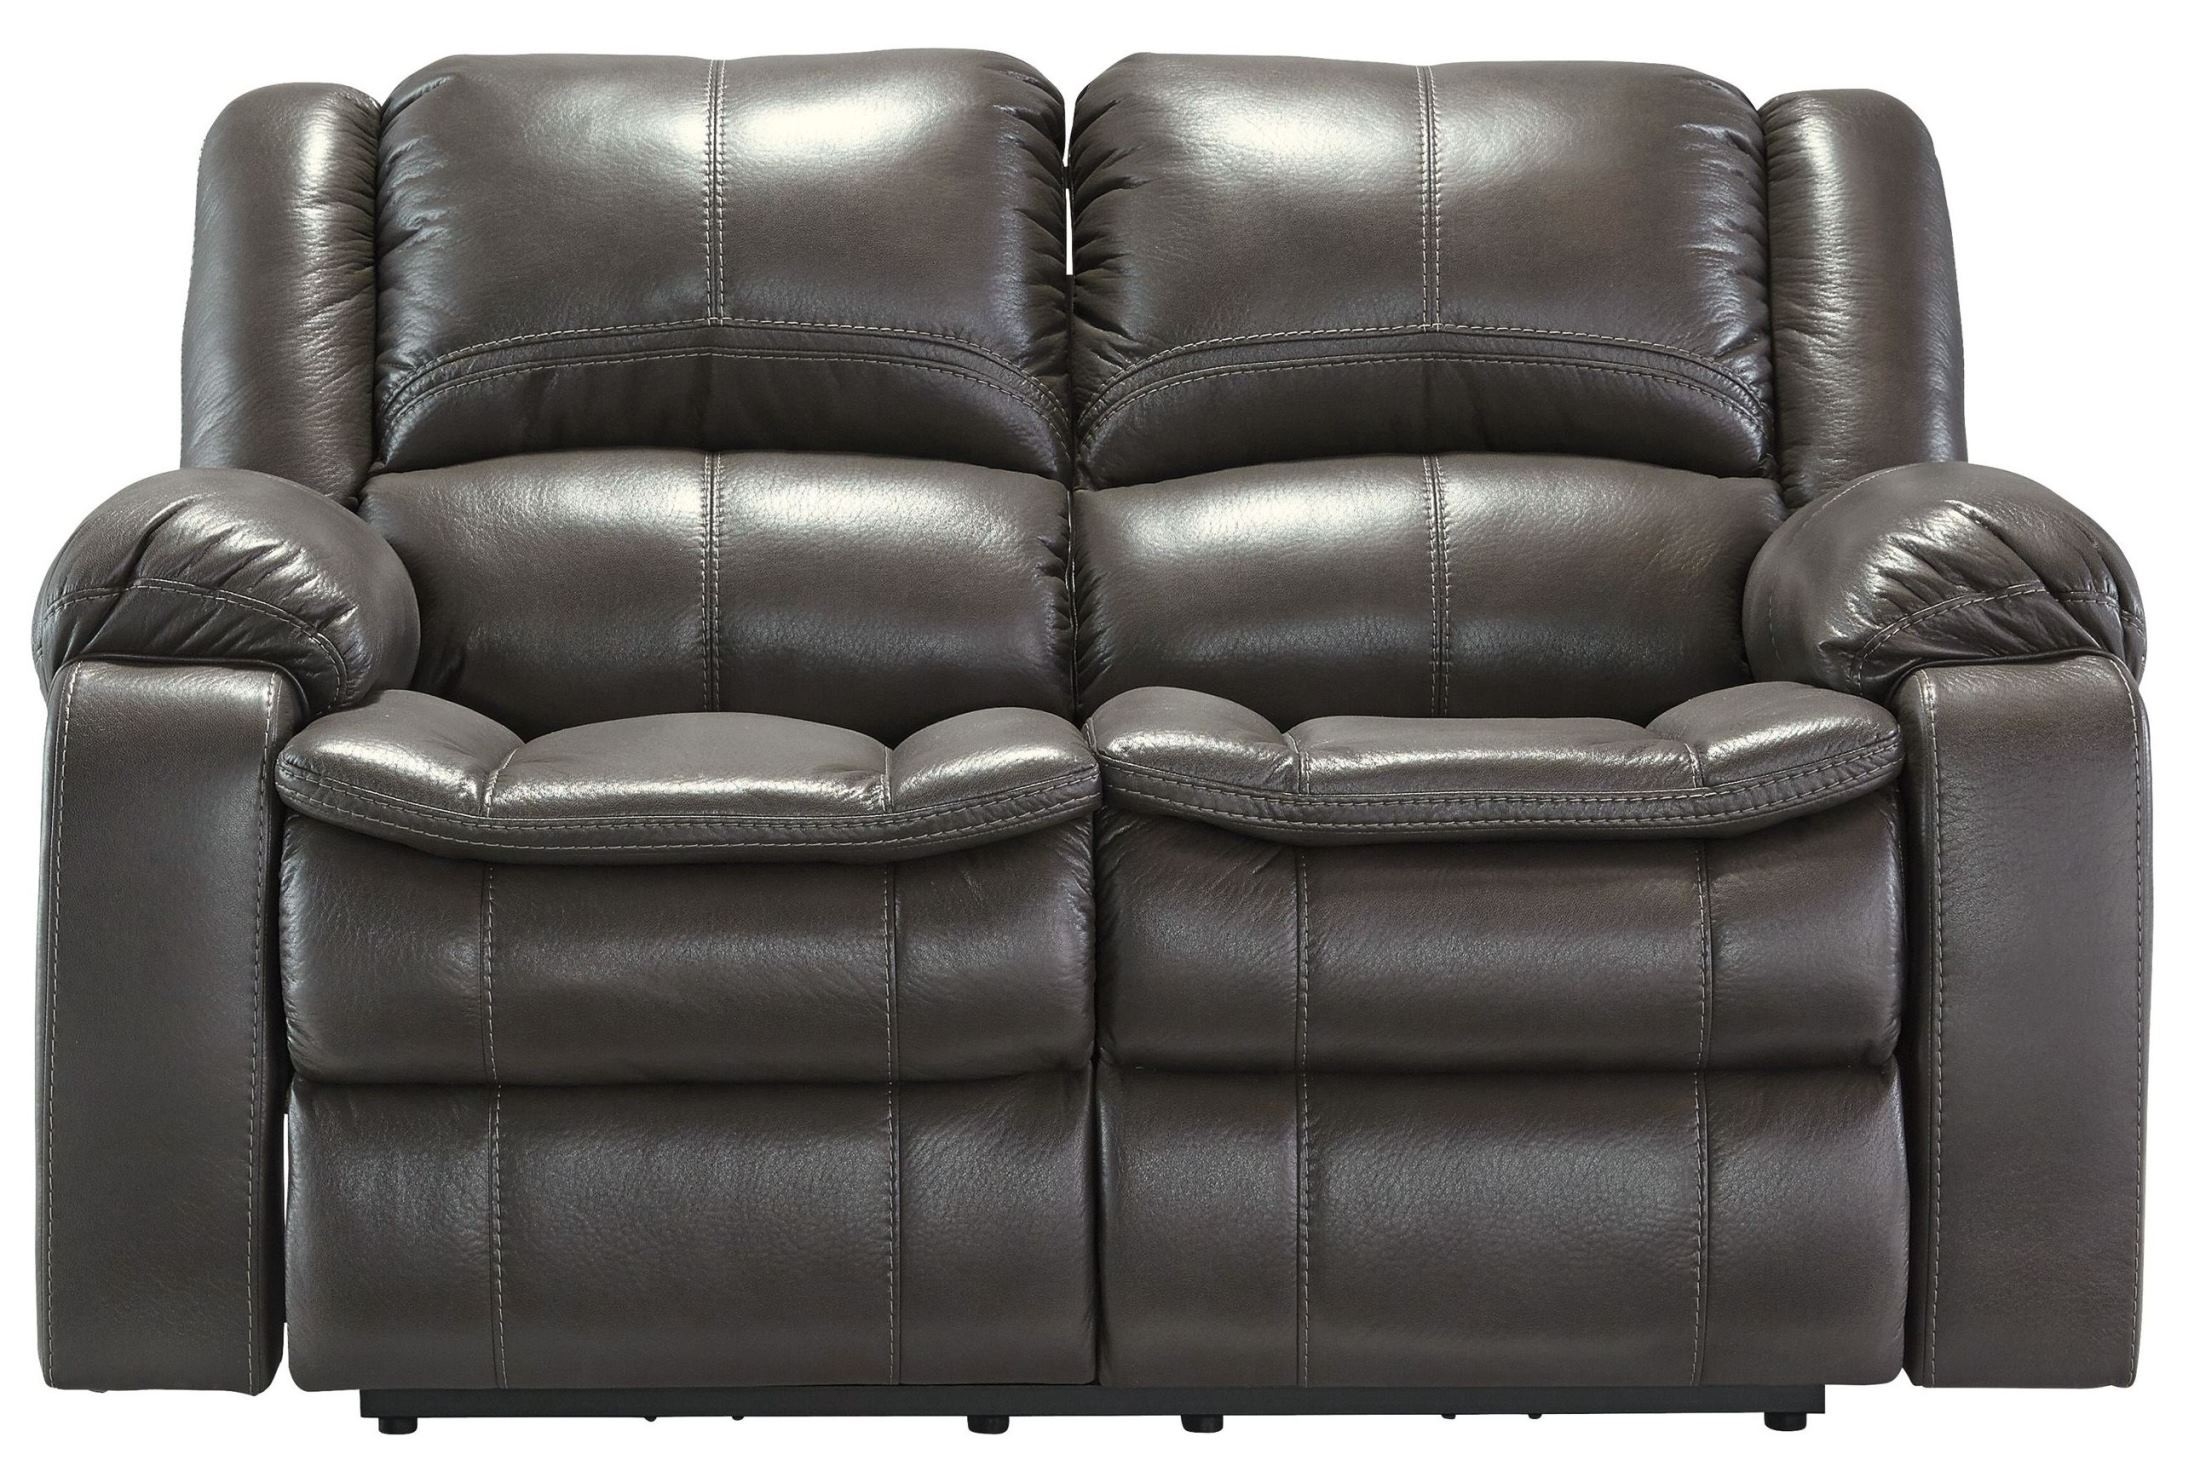 4 person reclining sofa england collegedale reviews long knight gray loveseat from ashley 8890686